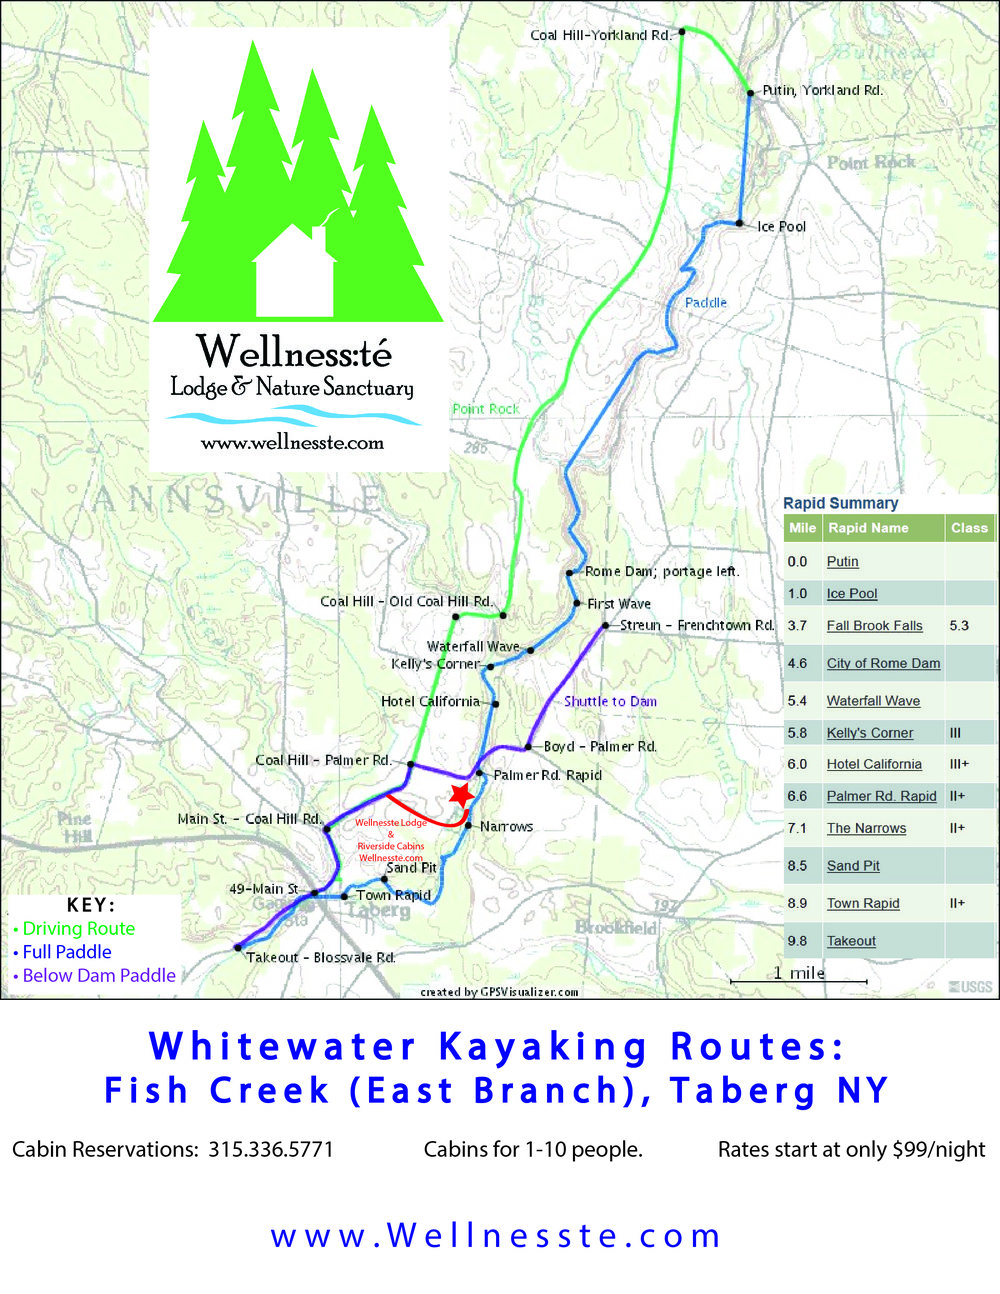 Kayaking-Map-for-East-Branch-of-Fish-Creek-NY-Near-Wellnesste-Lodge-Taberg-NY-01.jpg